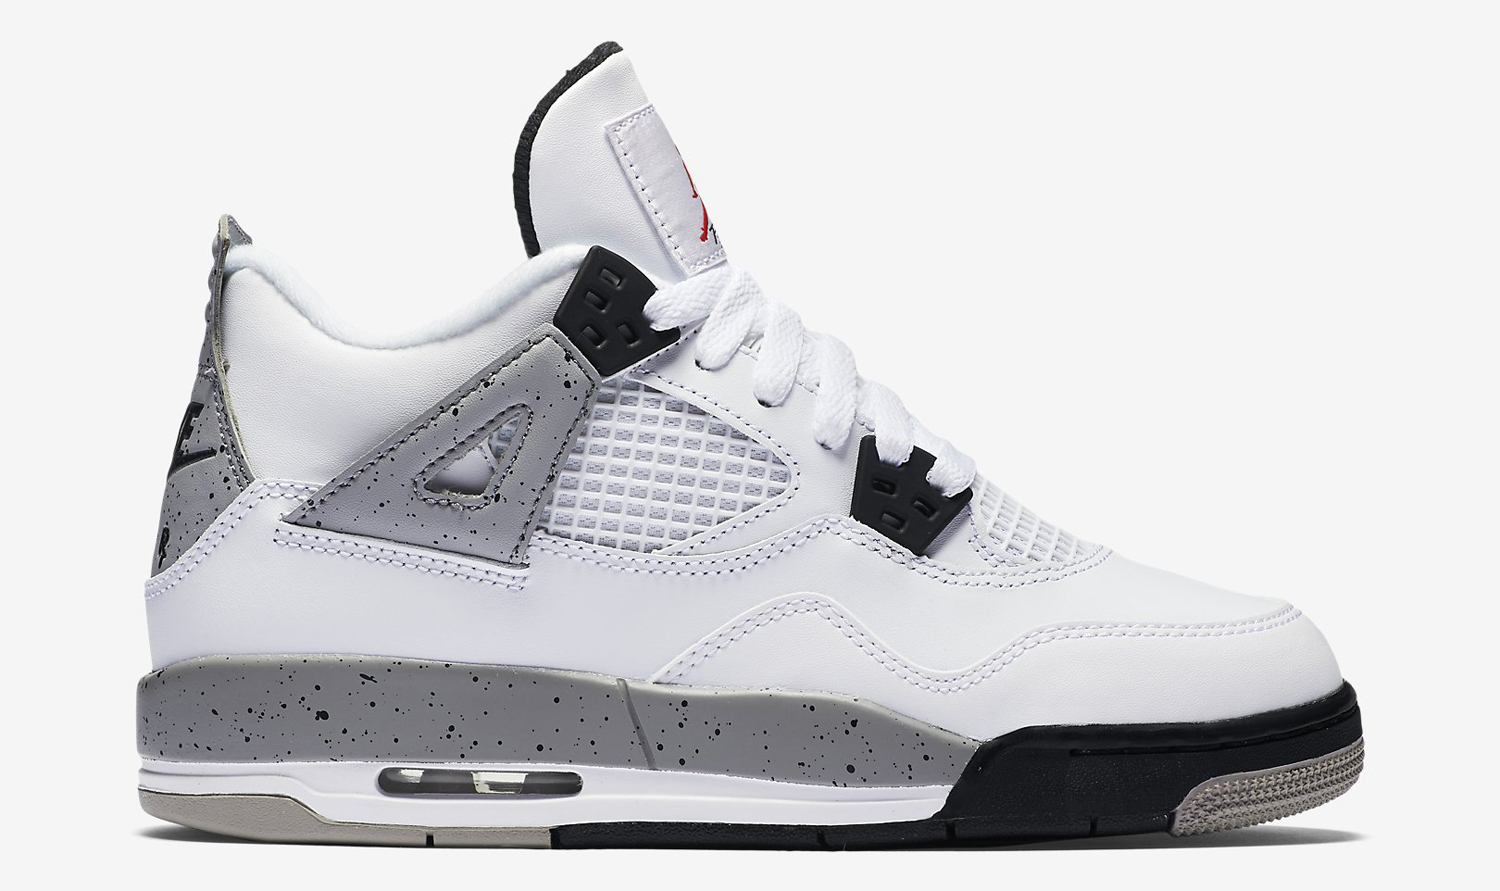 White Retro: Here Are All The Kids 'White Cement' Air Jordan 4s